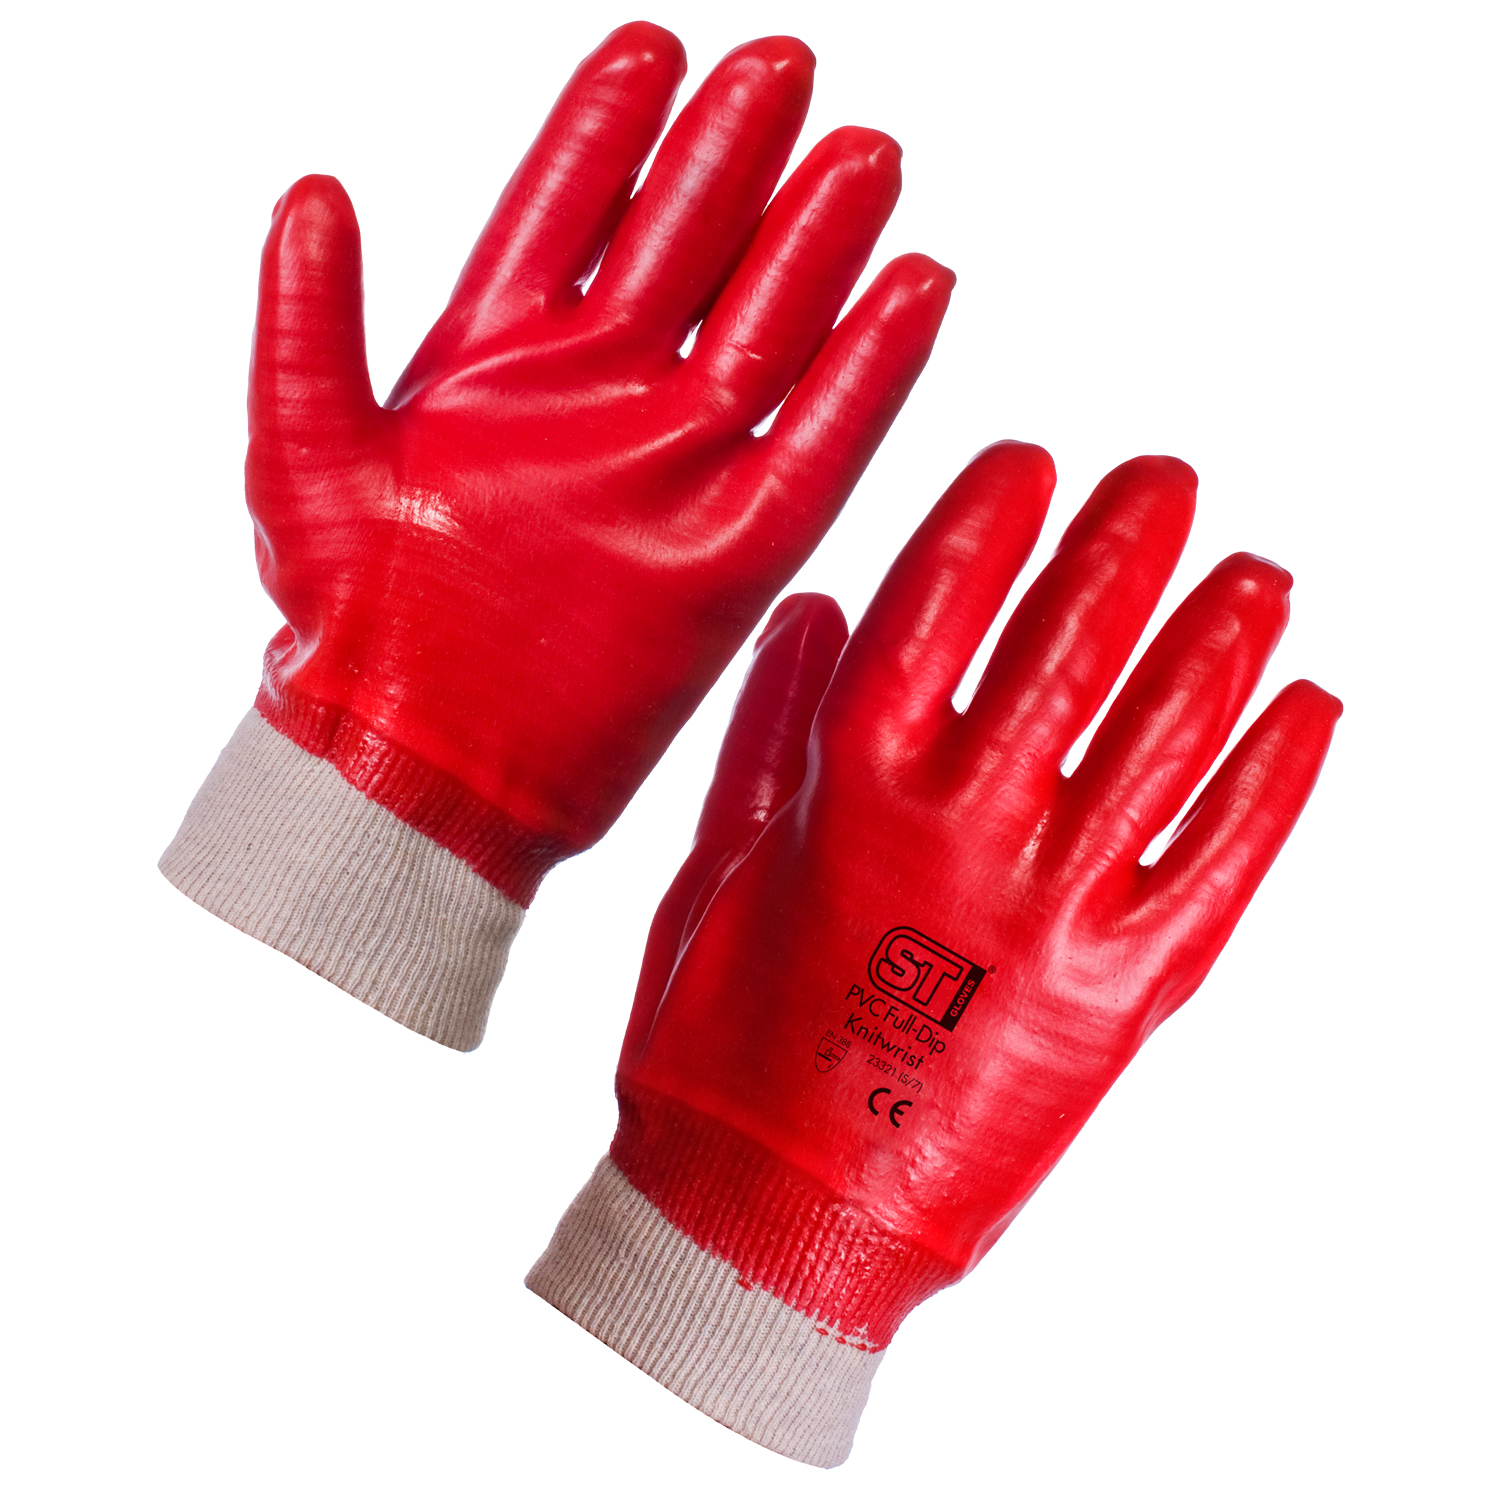 PVC Dipped Gloves(provide resi istance to acid, fat,oil,caust